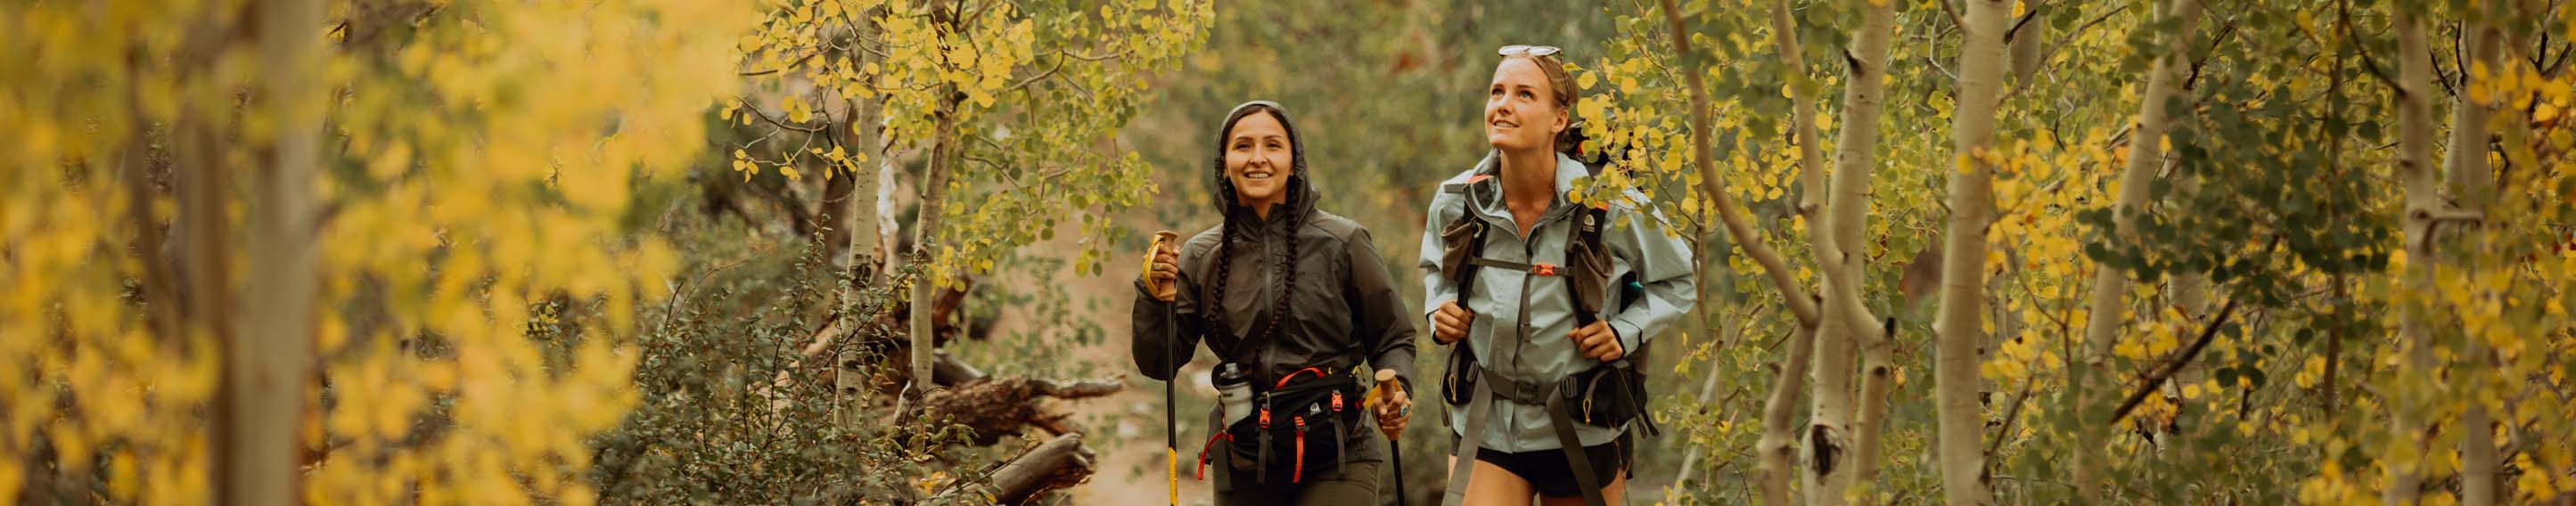 Women hiking in a forest